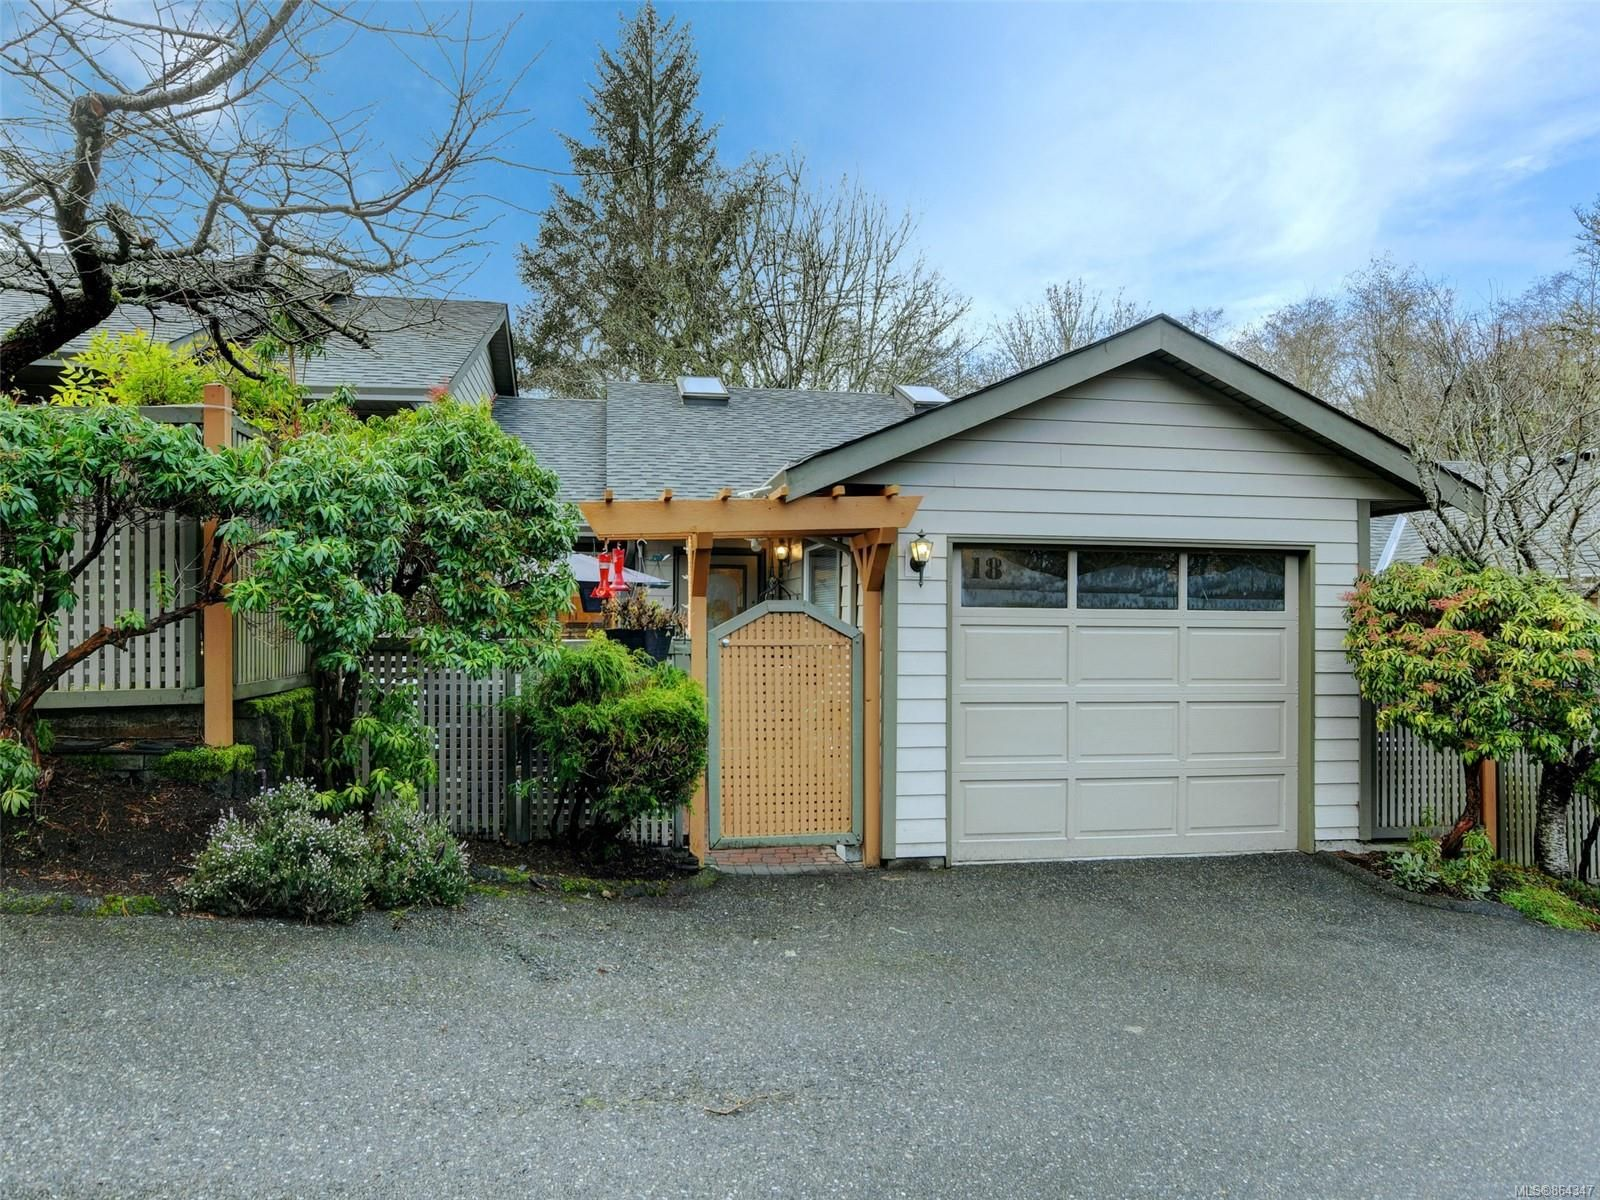 Main Photo: 18 2190 Drennan St in : Sk Sooke Vill Core Row/Townhouse for sale (Sooke)  : MLS®# 864347